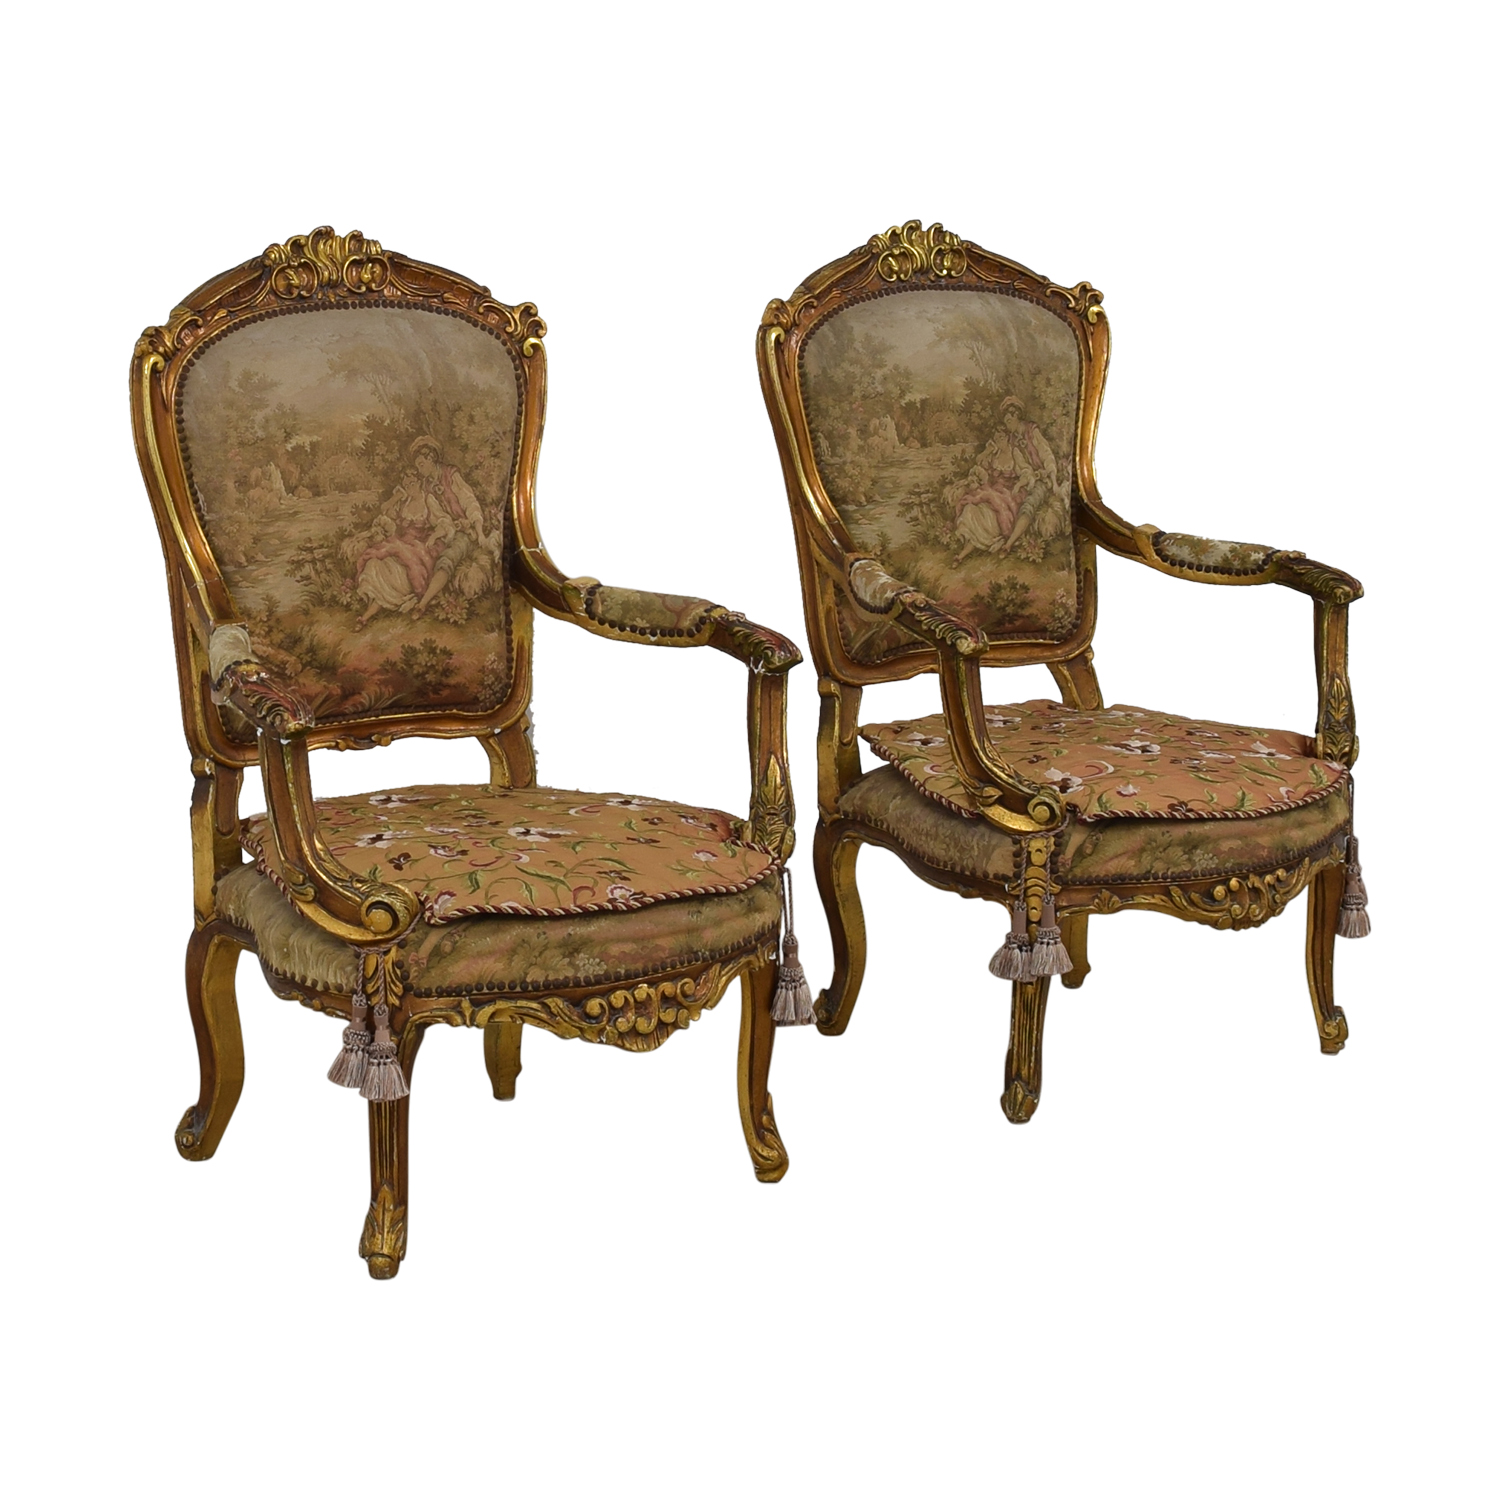 Distressed Antique Louis XV Accent Chairs nj